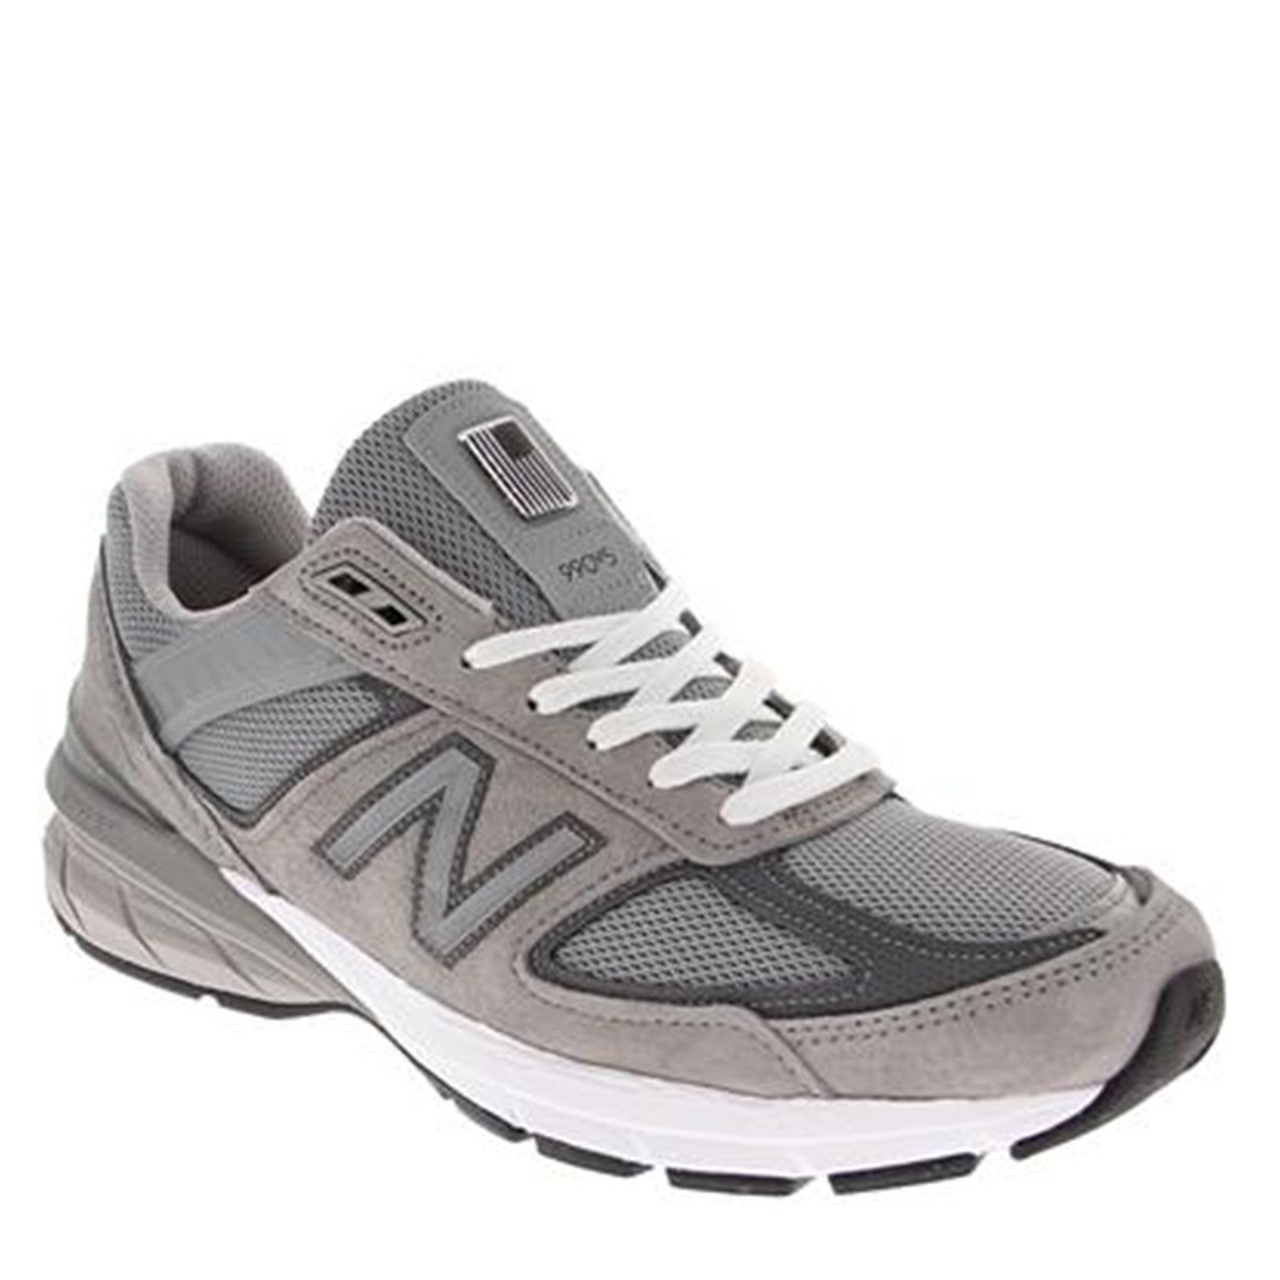 New Balance Shoes New Balance 990v5 Men's Gray Running Shoes - Family Footwear Center